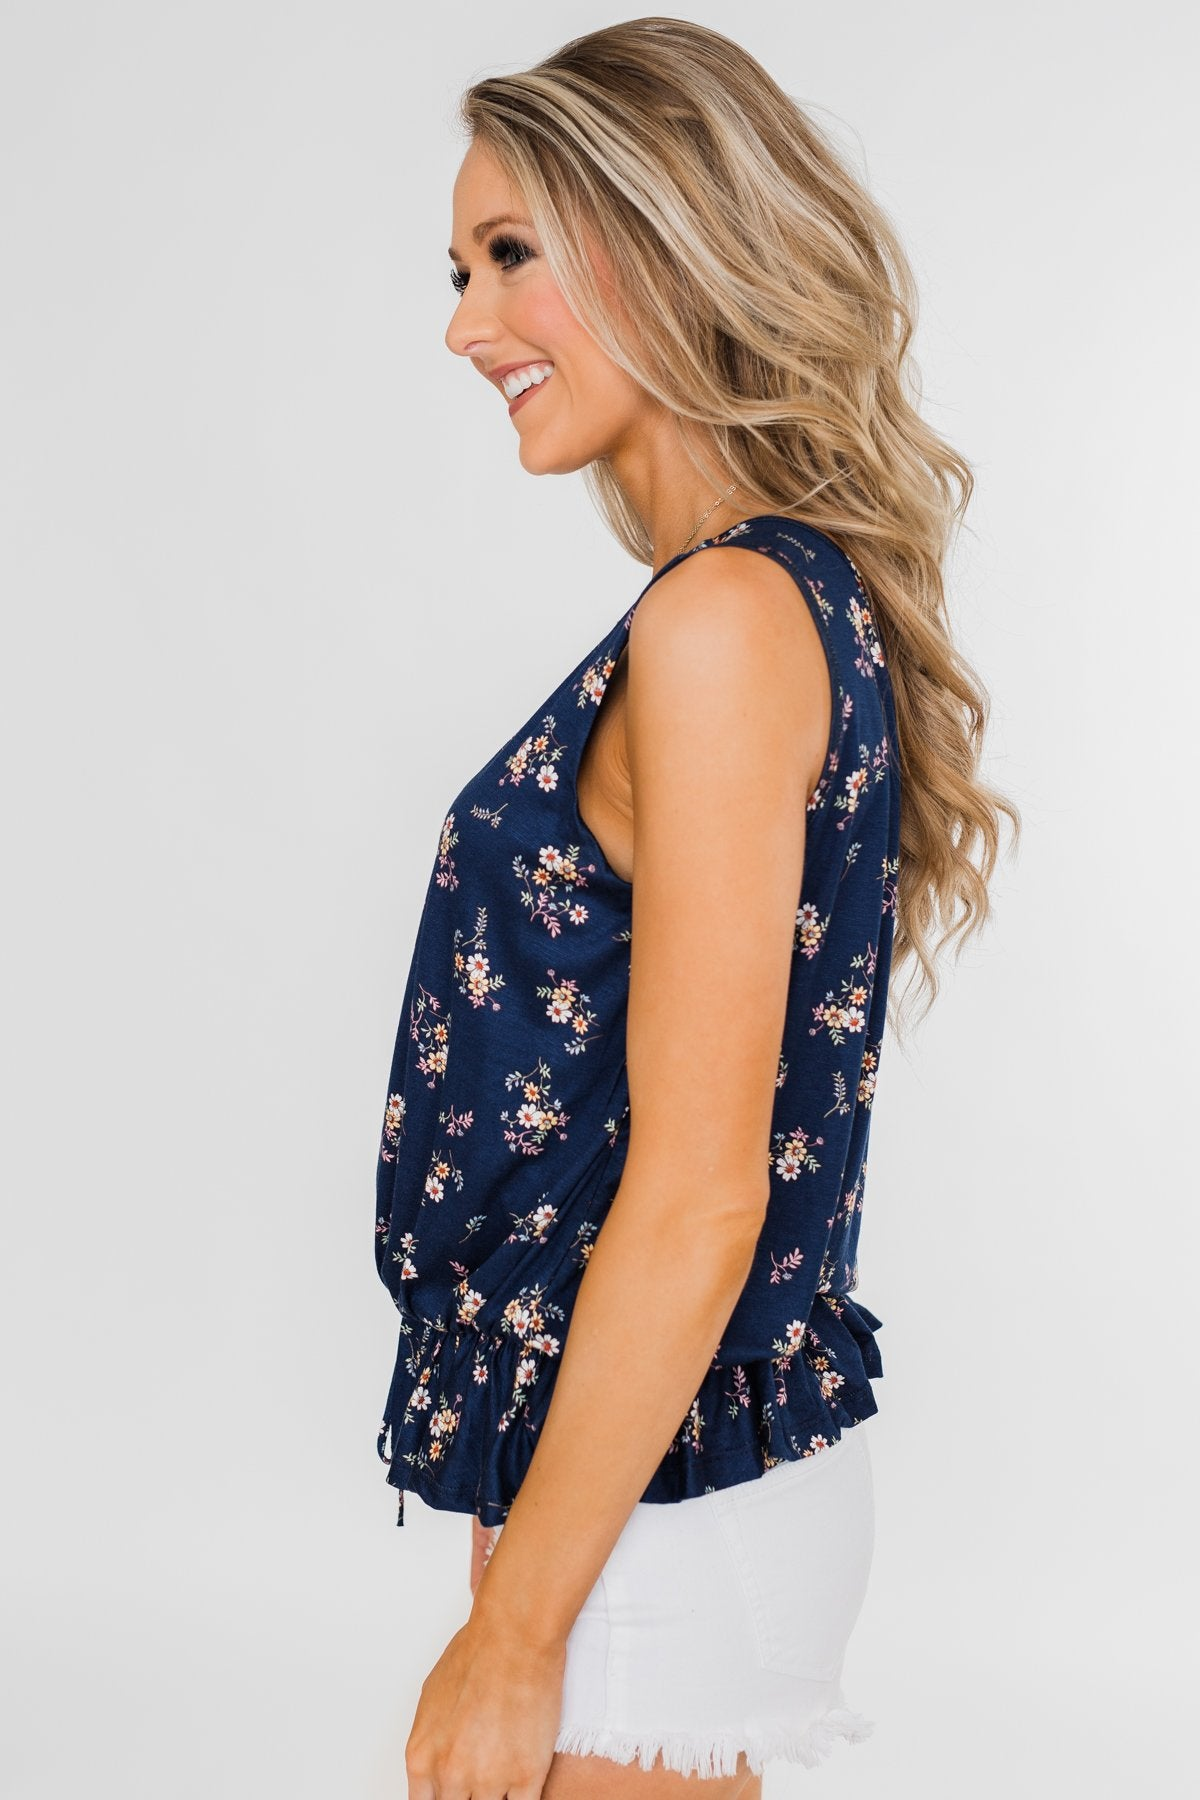 Belong With You Cinch Waist Floral Tank Top- Navy